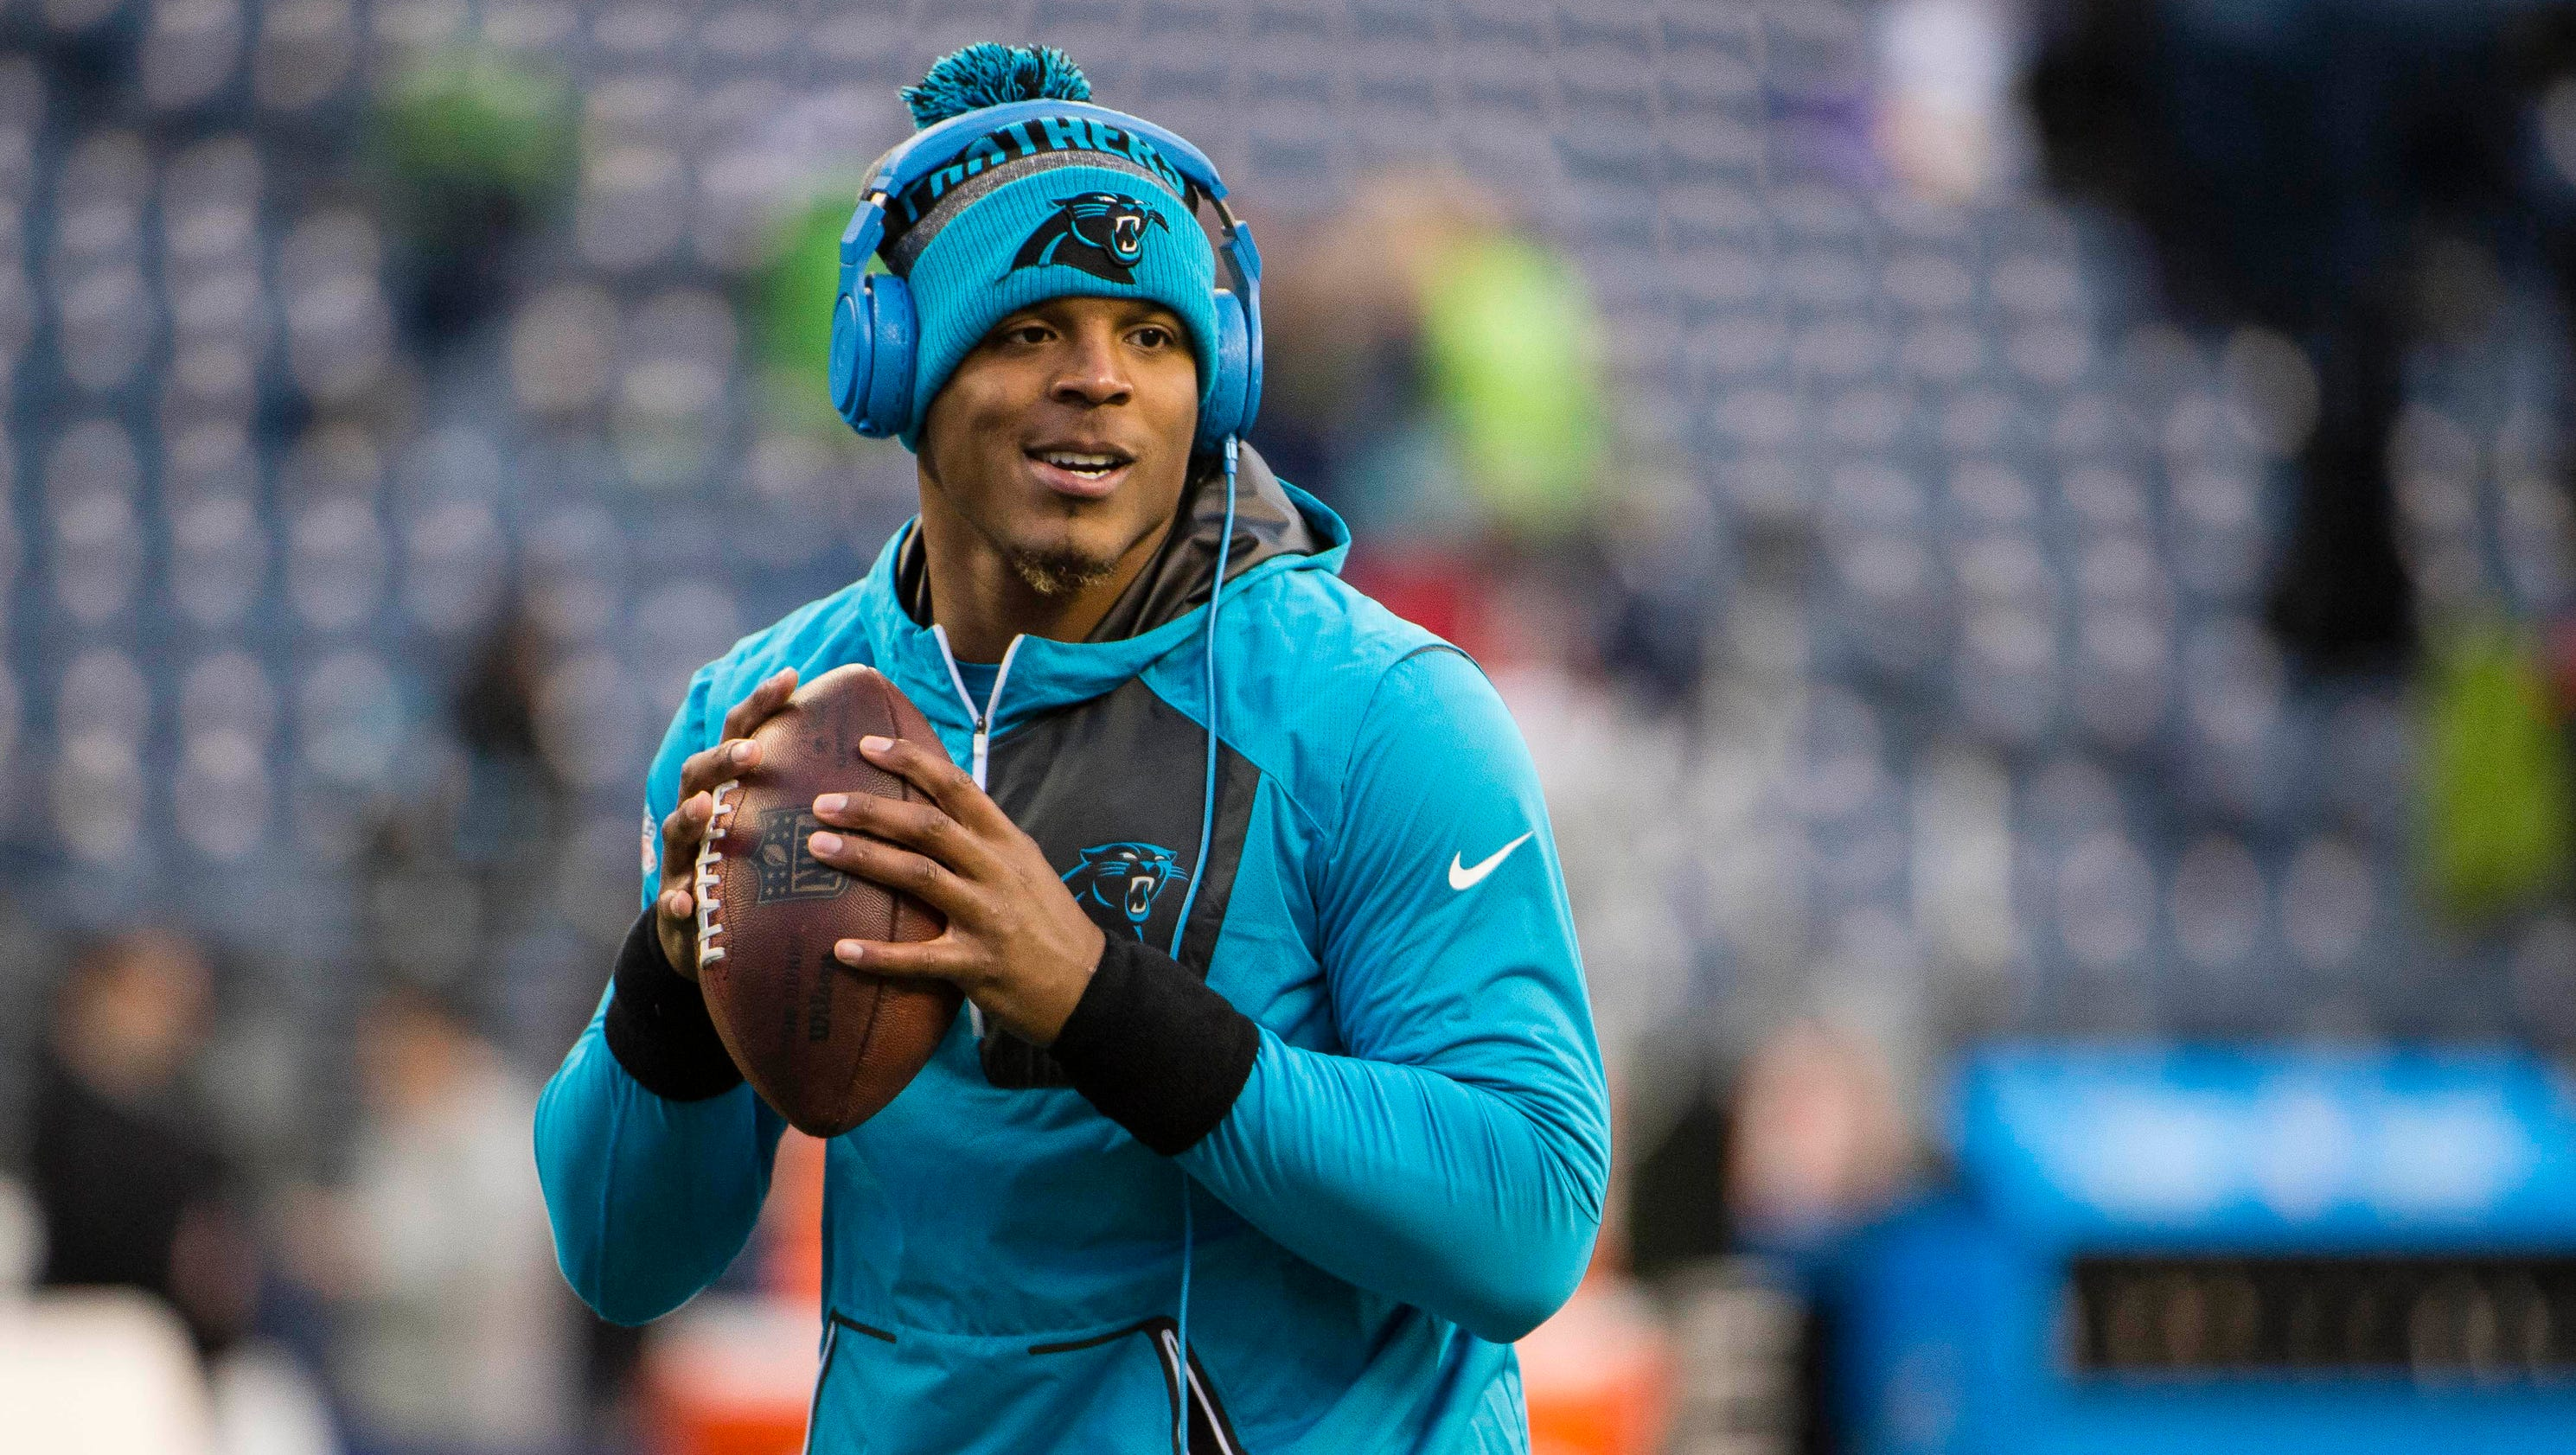 Panthers Bench Cam Newton For Dress Code Violation